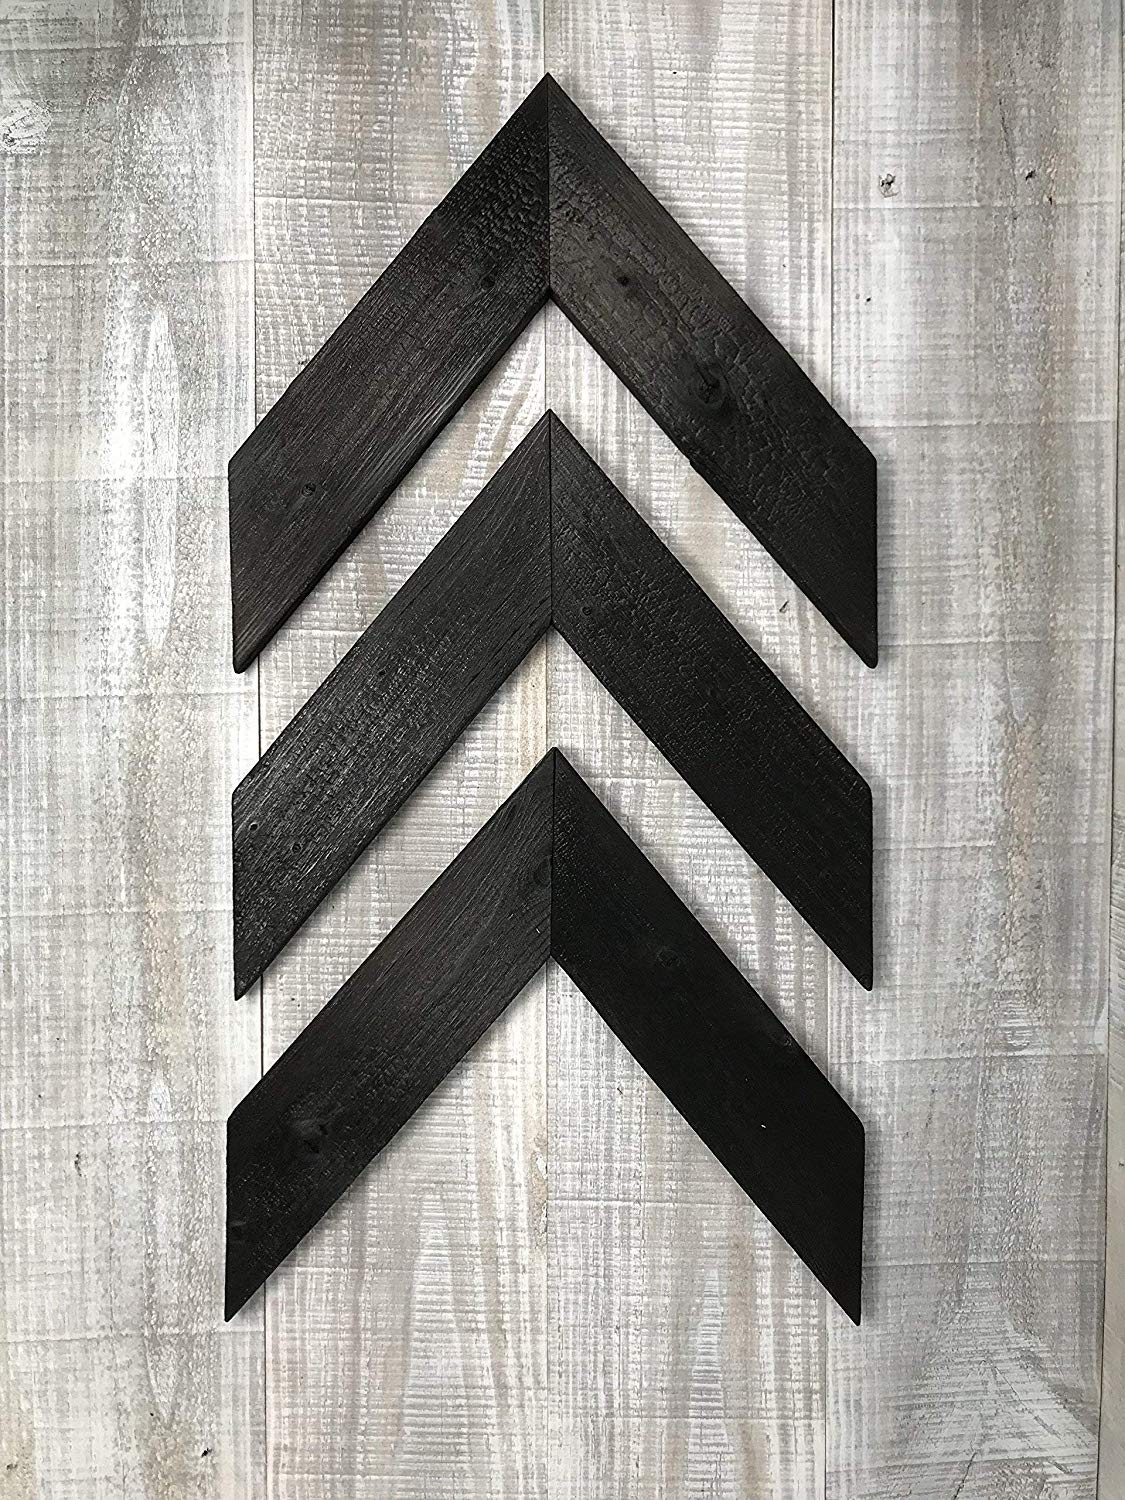 Shou Sugi Ban Wood Arrows | Torched Wood | Set of 3 | 100% Handmade in the USA with FSC-Certified Wood